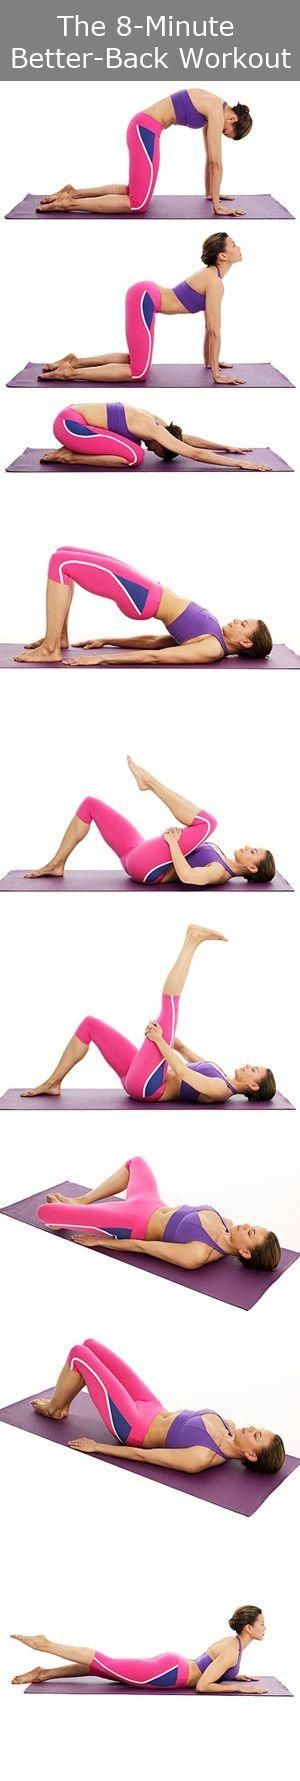 How to prevent back pain #workout #stretch #yoga